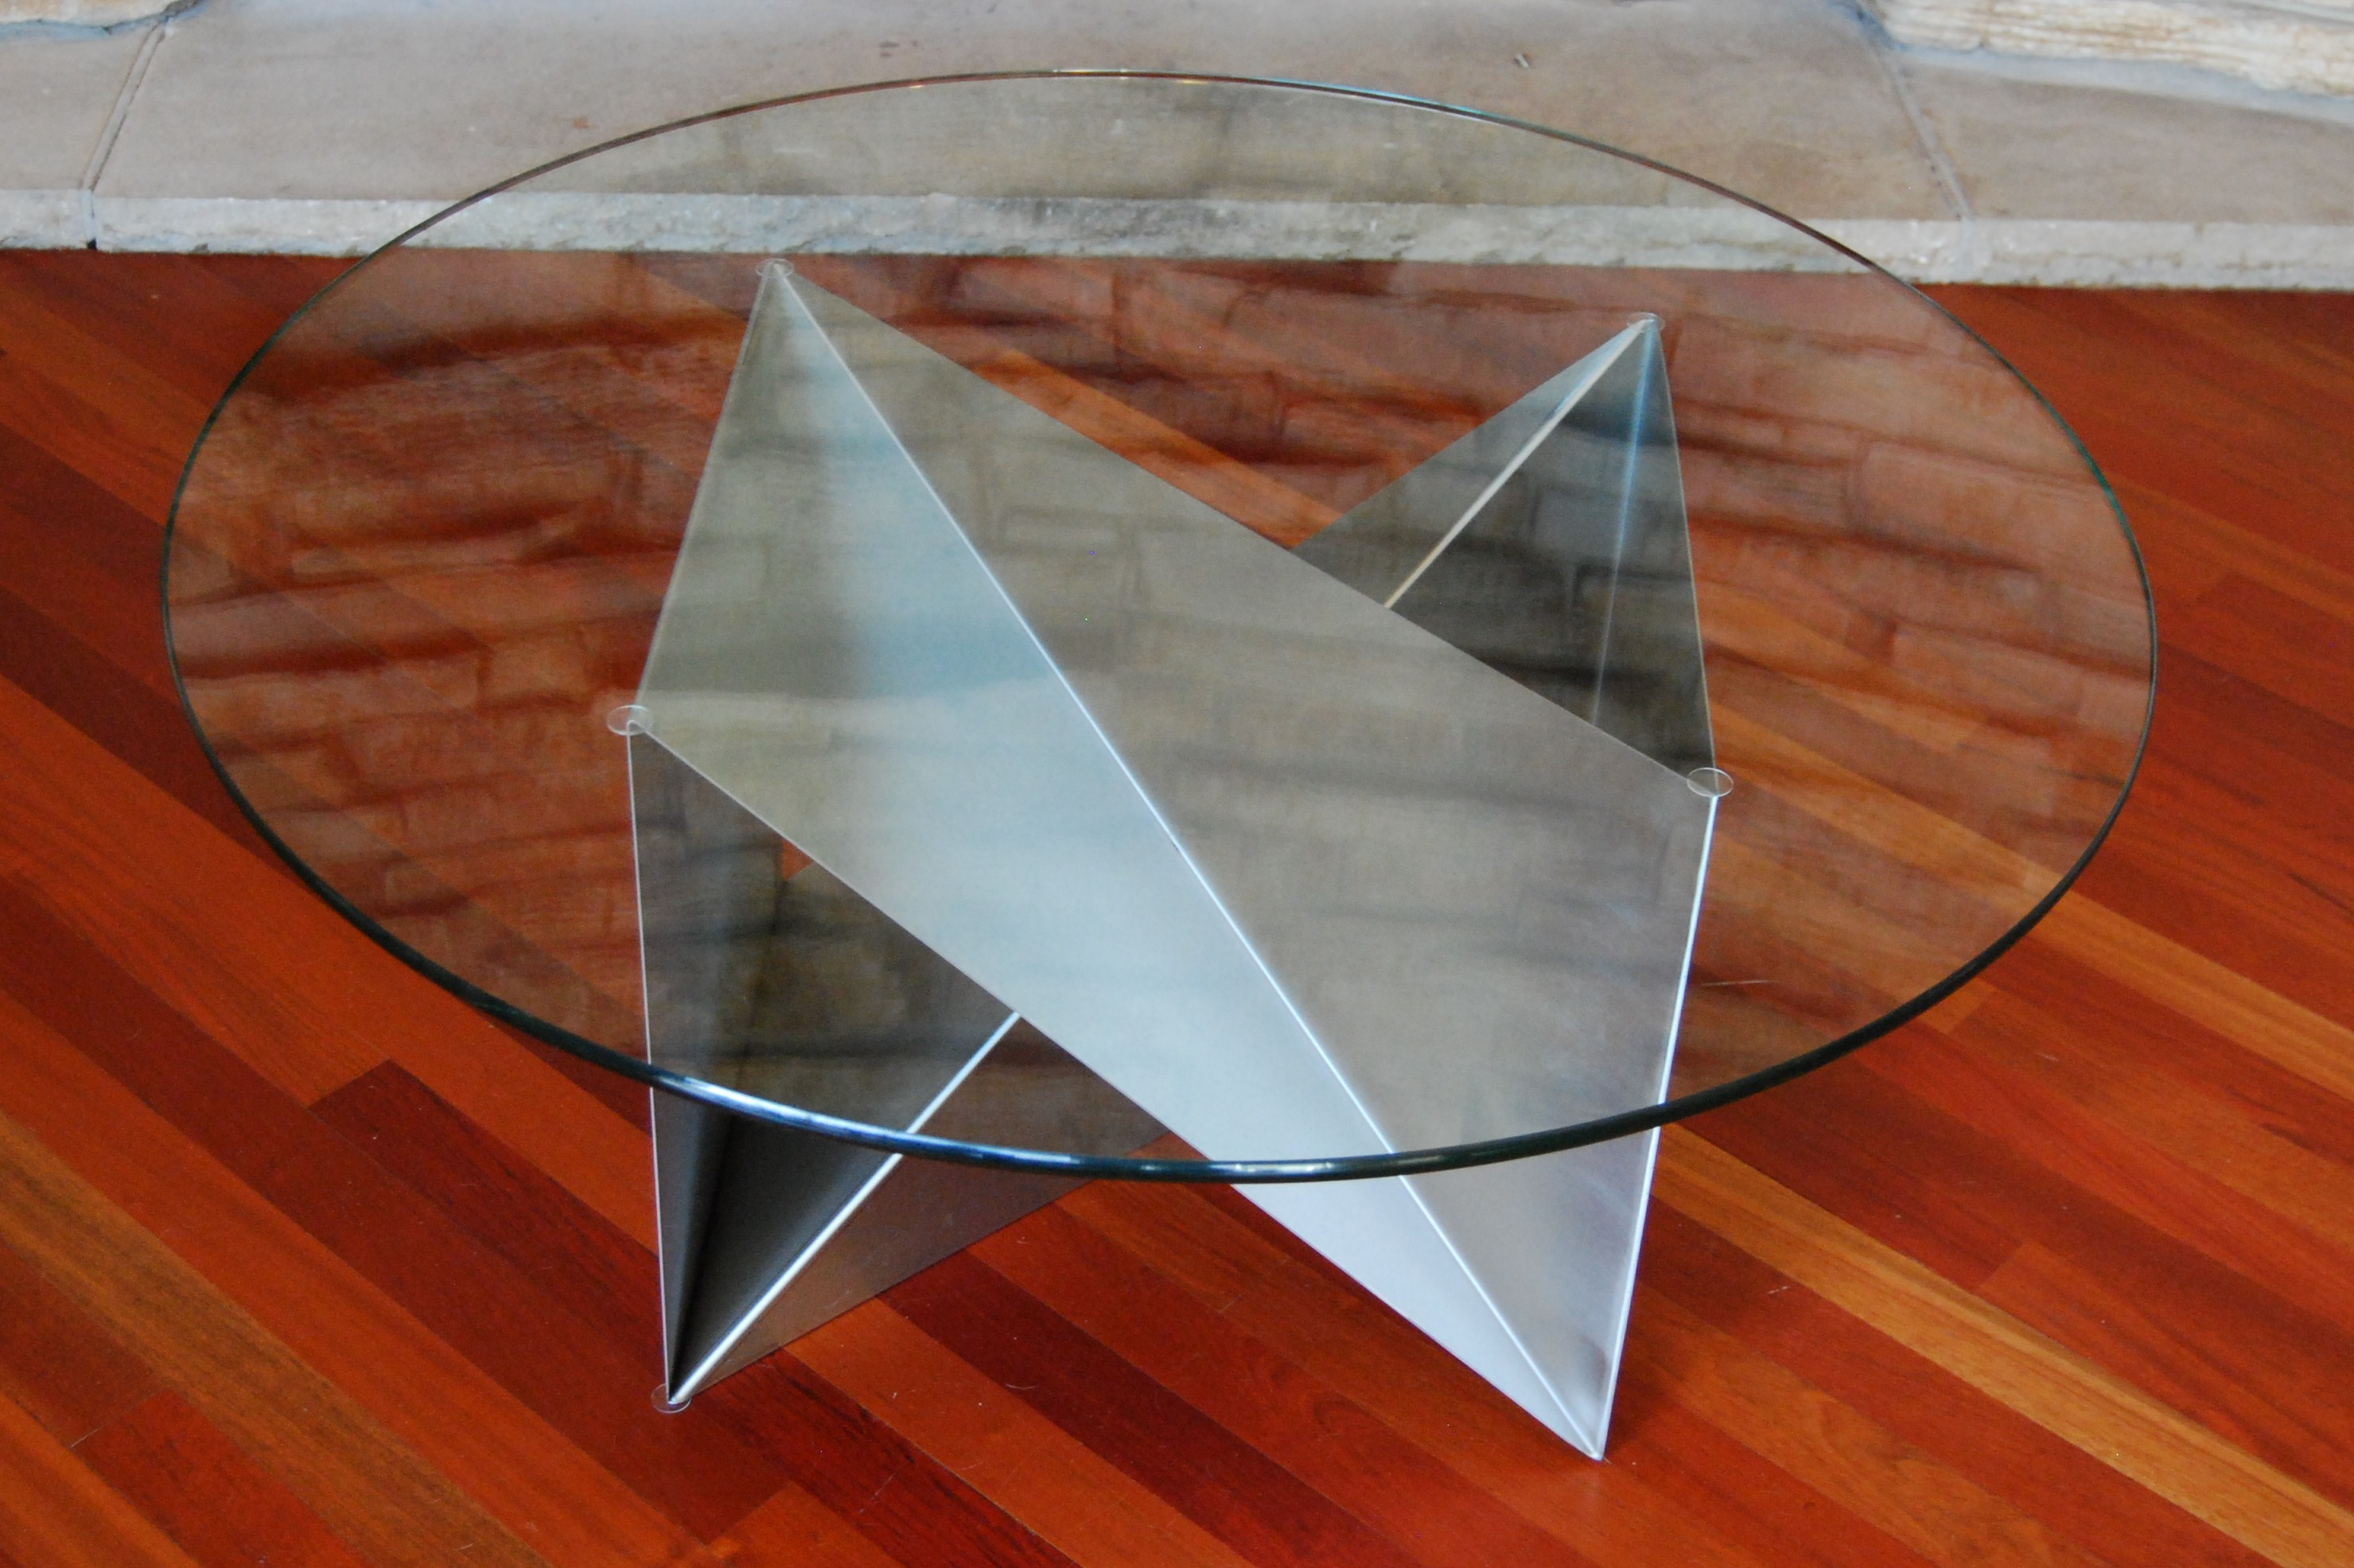 Coffee Tabletb161618 Laying On Its Side With A 36 Diameter Round Glass Top Stainless Steel